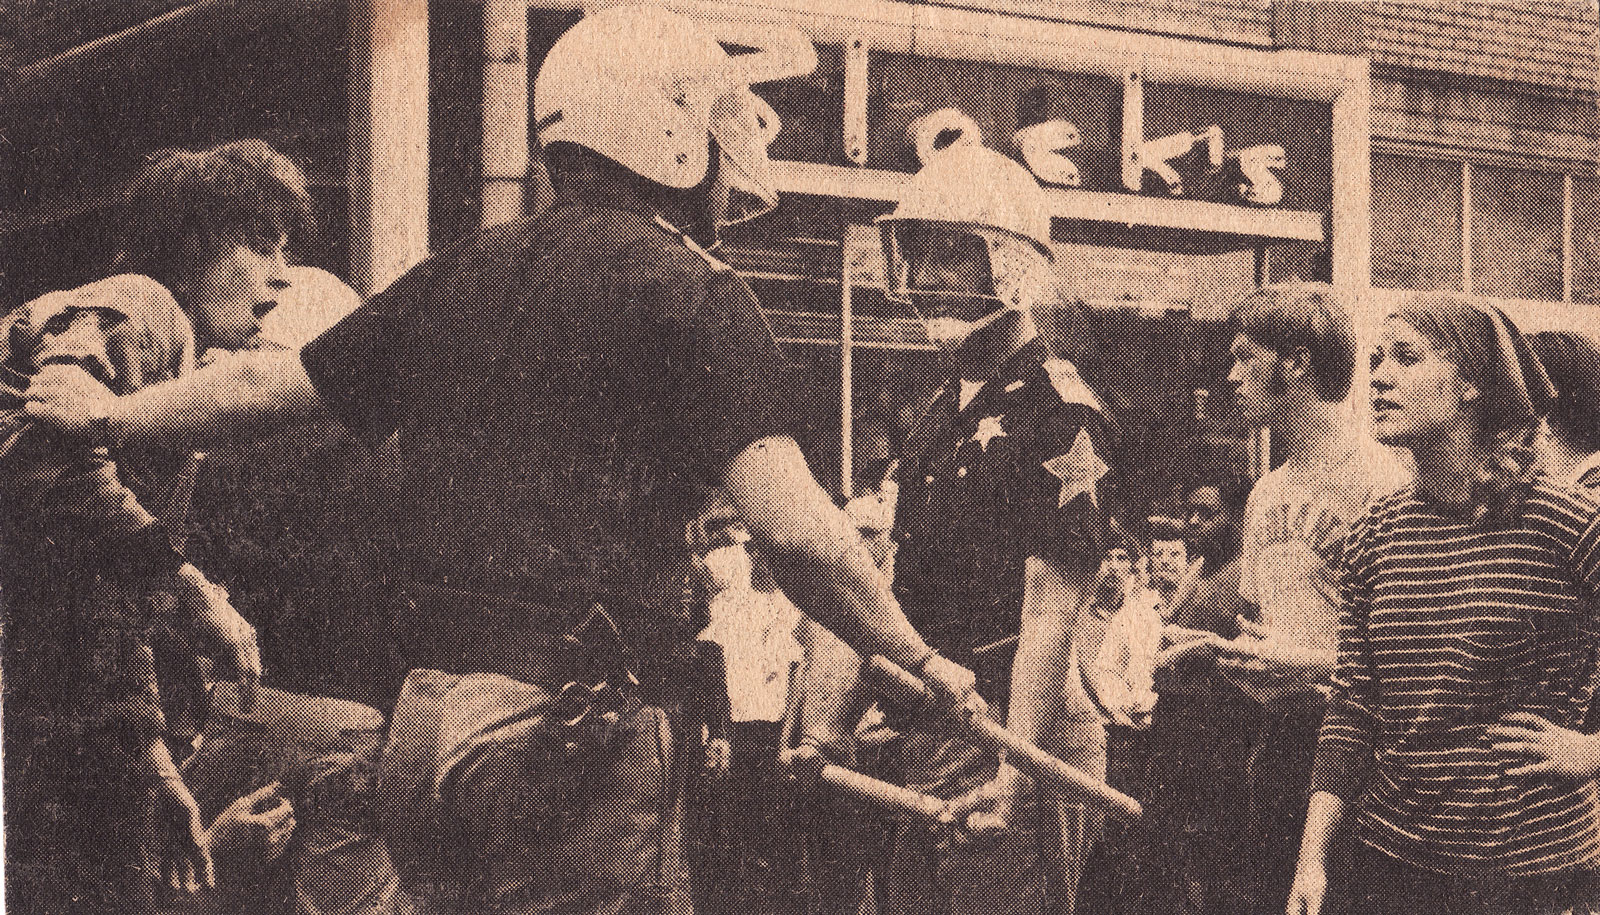 Paul getting arrested at Viet Nam war demonstration in Bloomington, Indiana 1969. Photo from Bloomington Tribune newspaper.